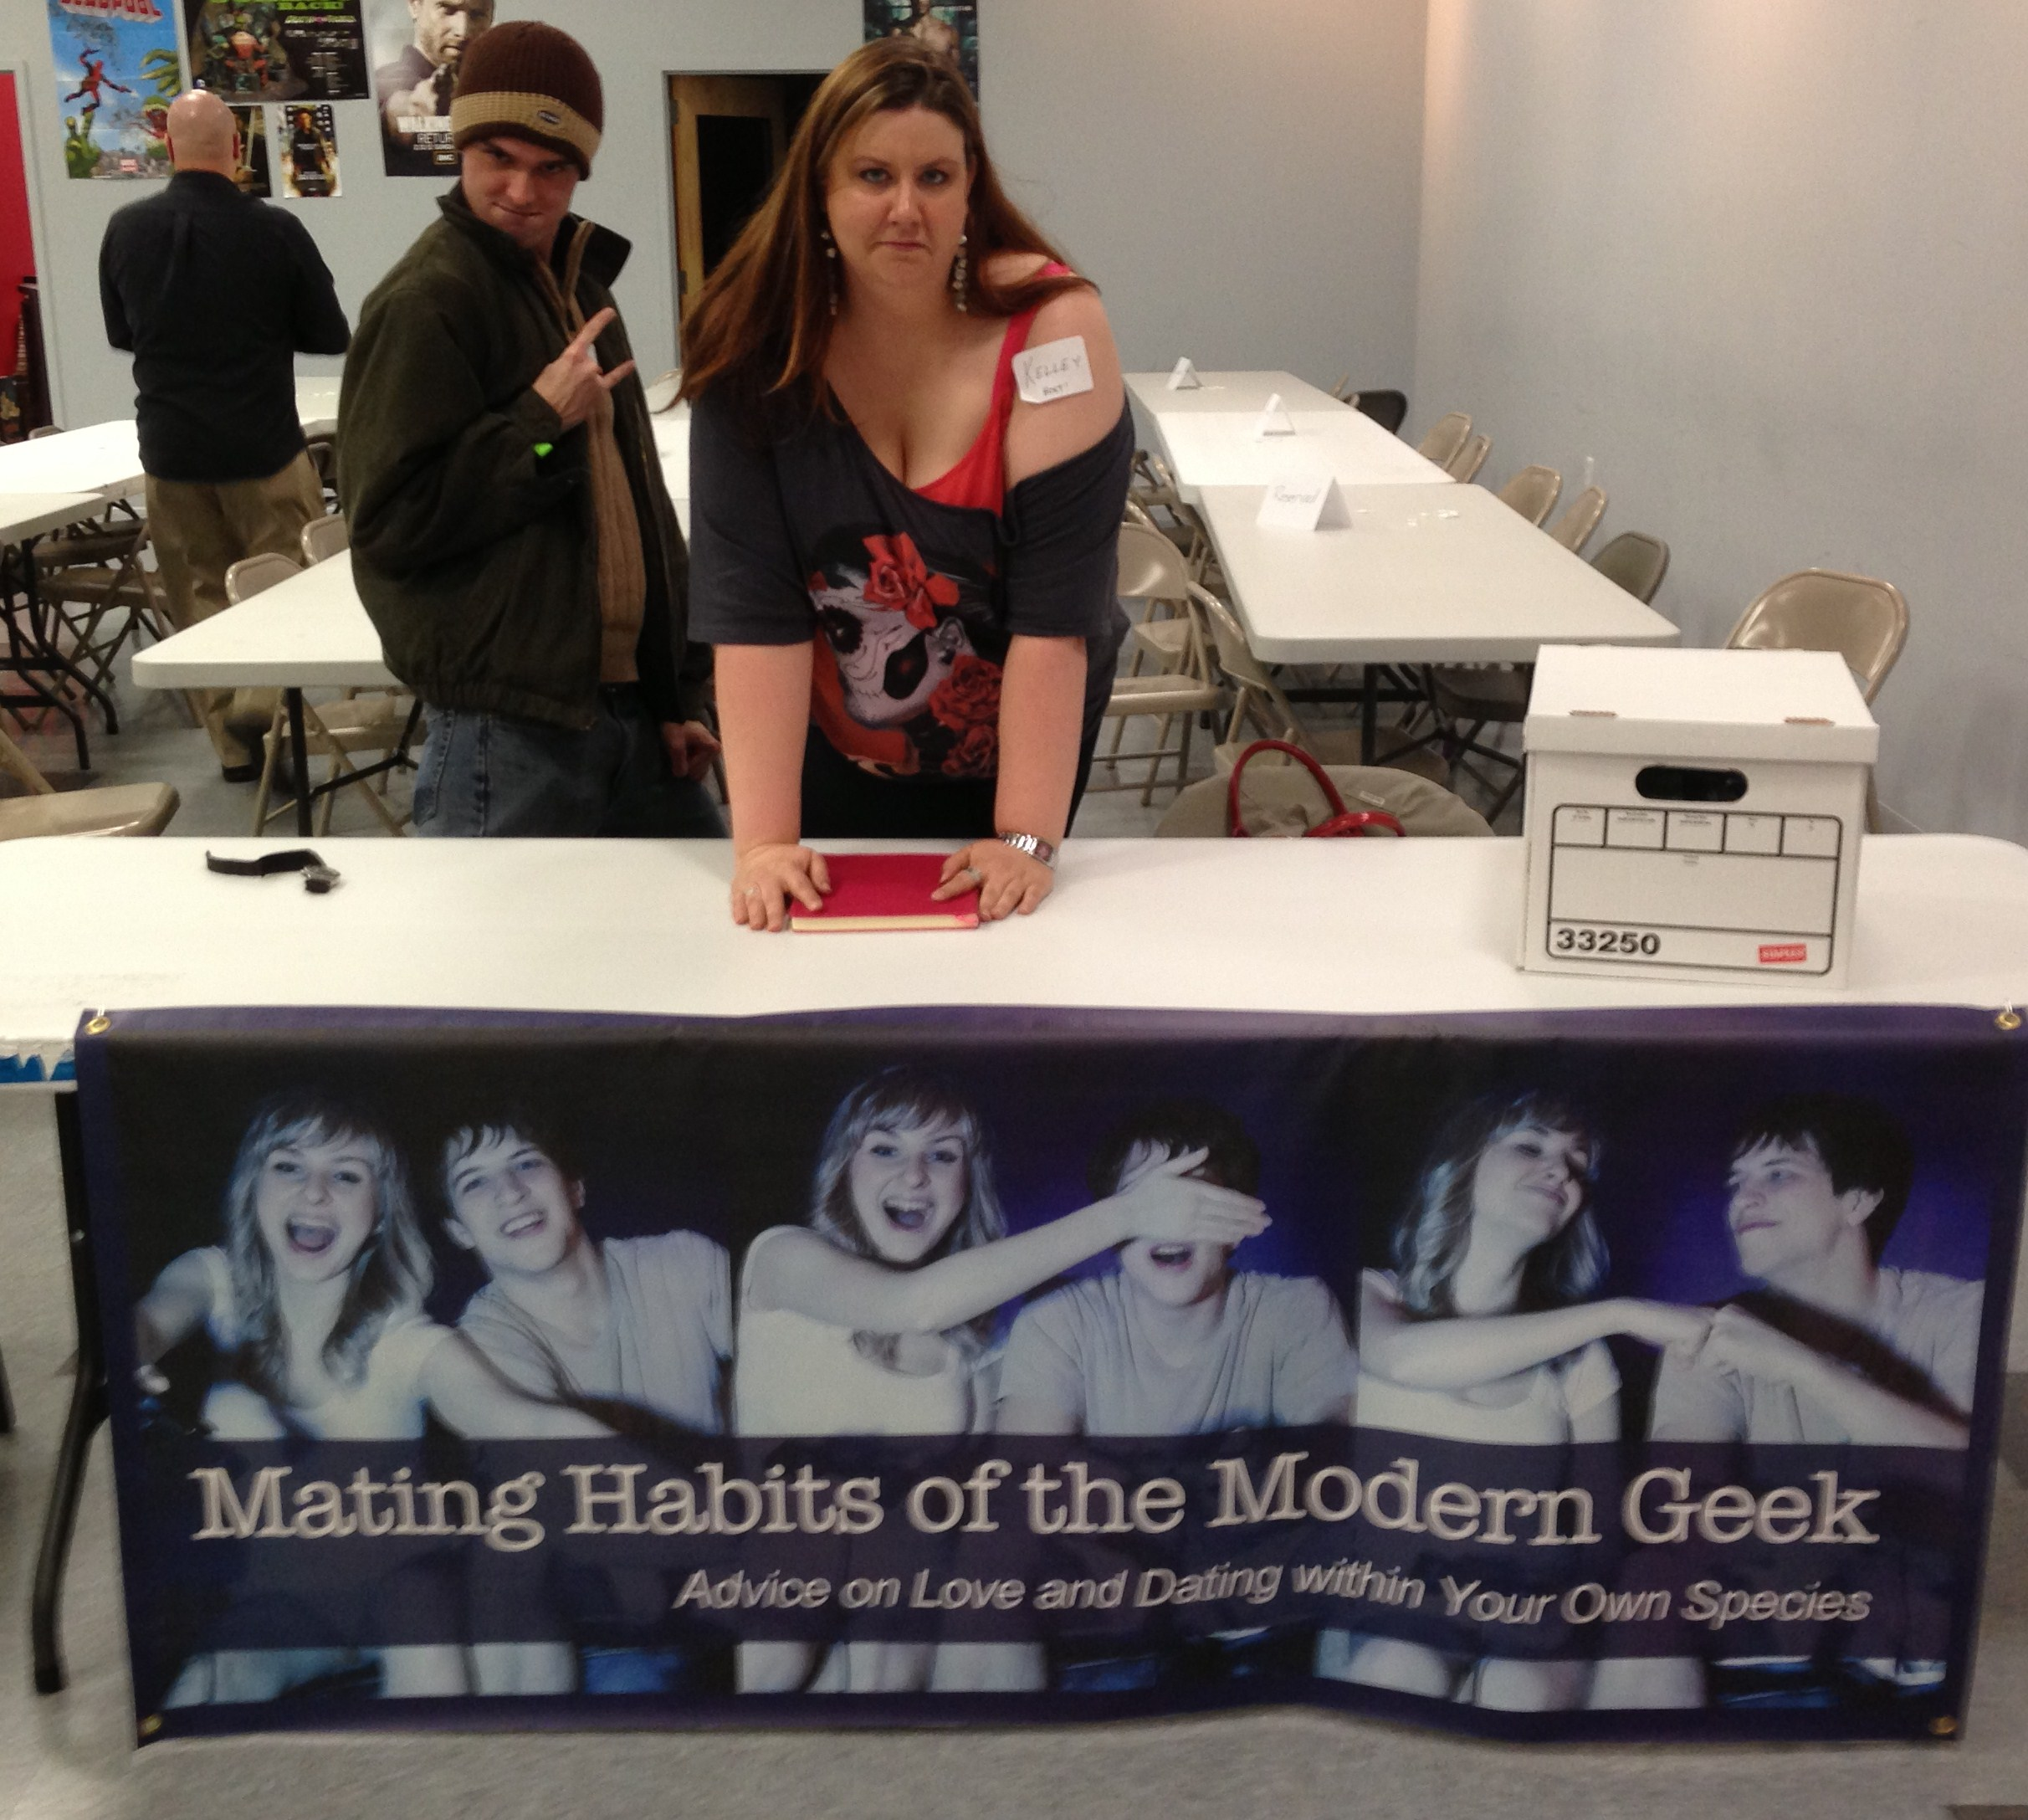 About Mating Habits of the Modern Geek